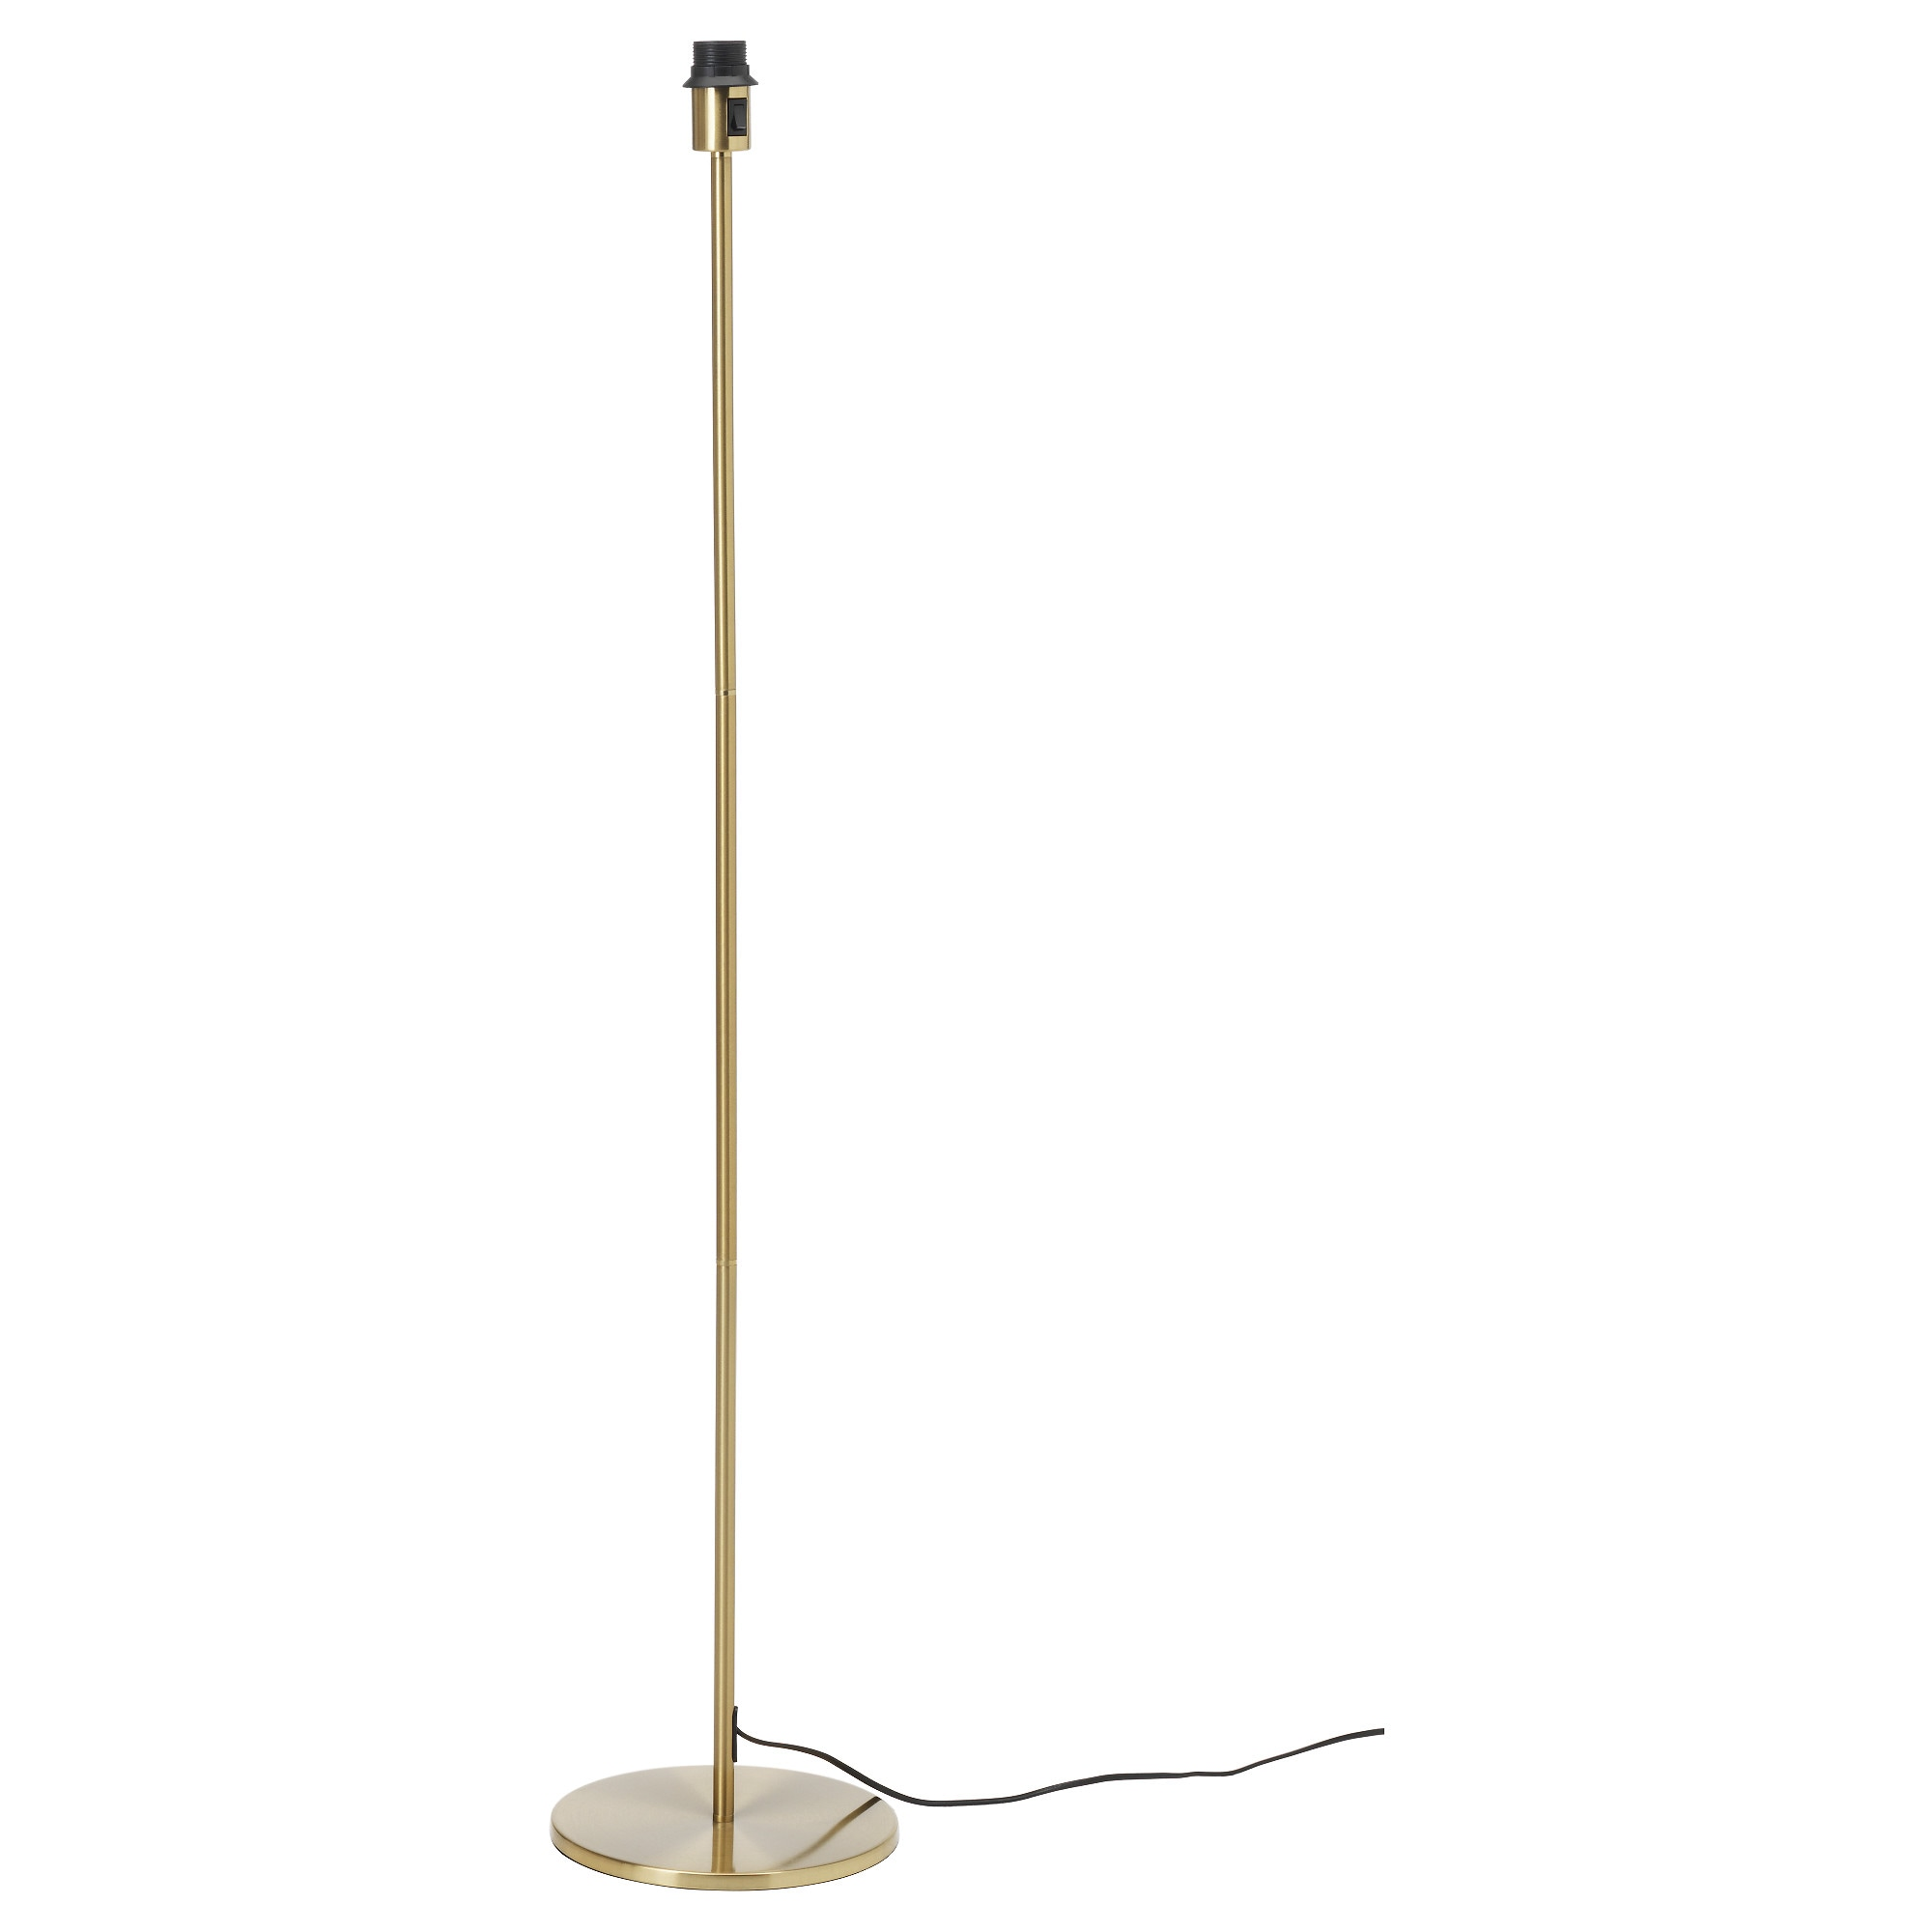 Ikea Floor Lamp Base: RODD floor lamp base with LED bulb, brass color Height: 52